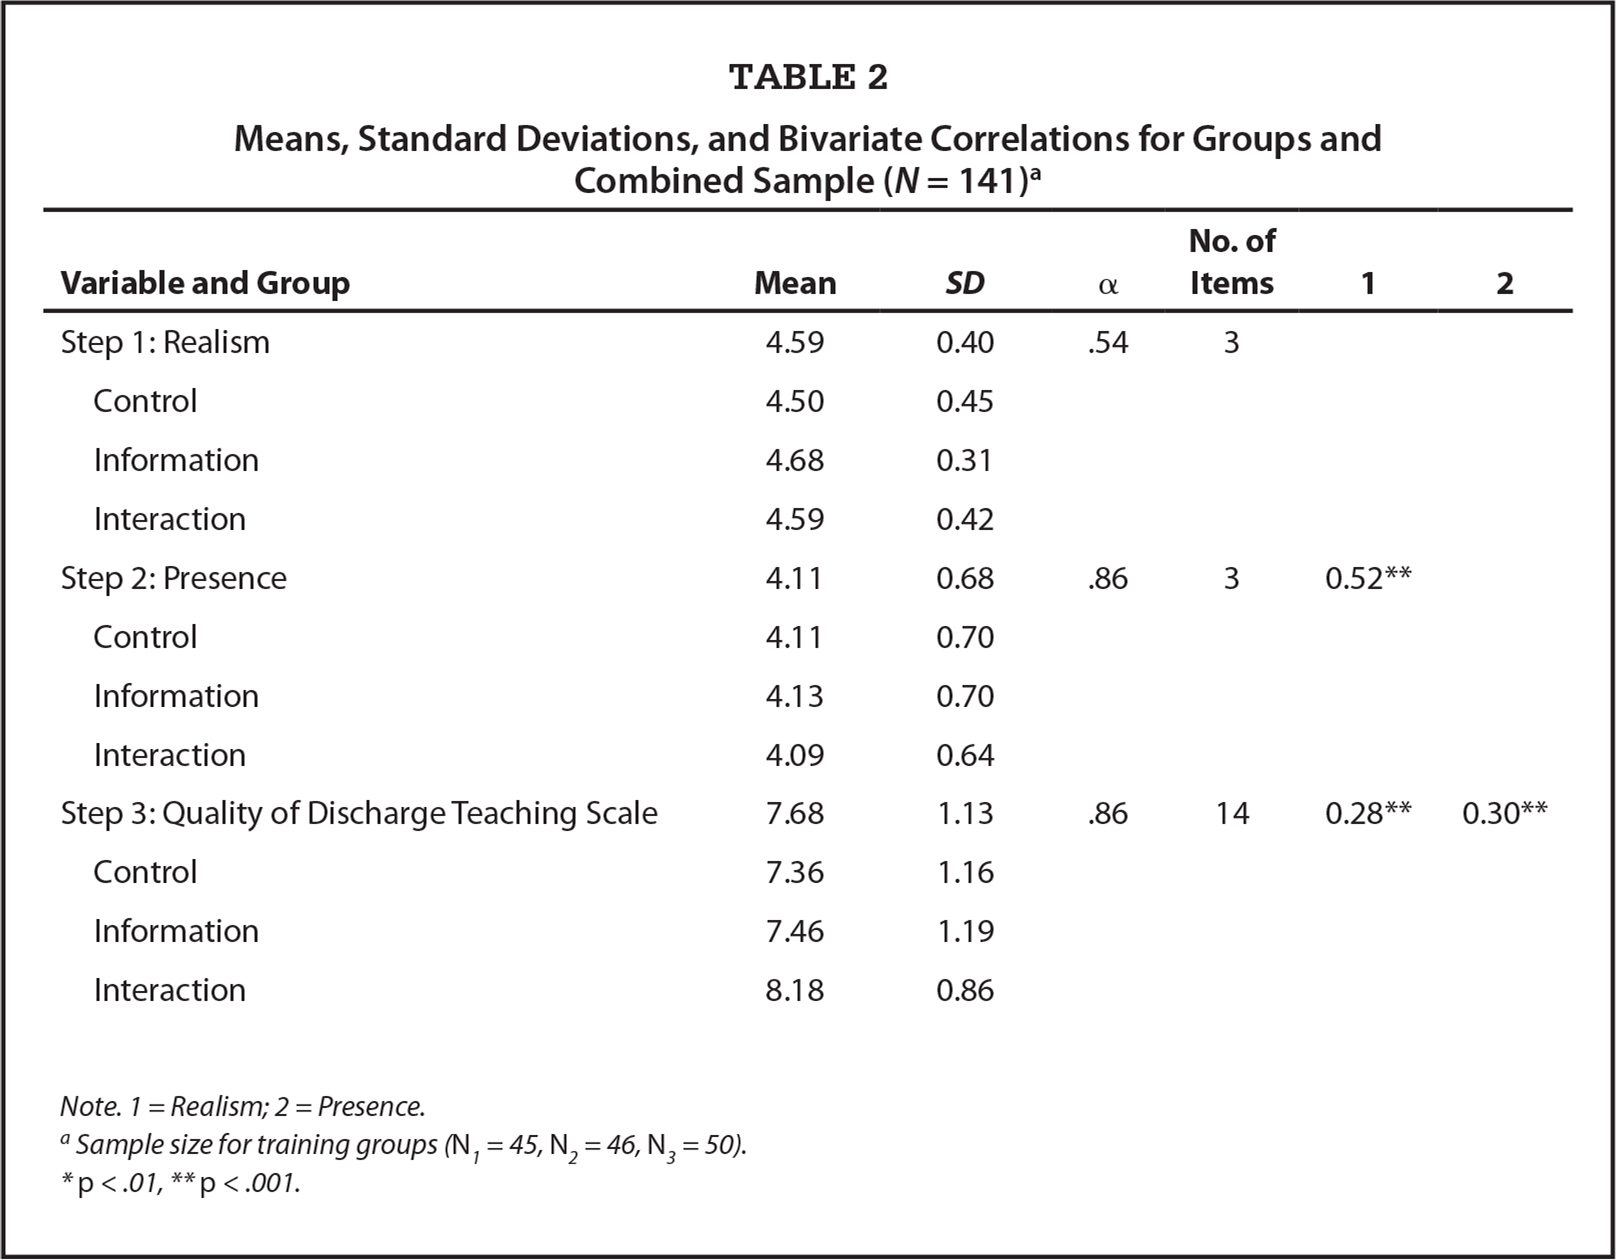 Means, Standard Deviations, and Bivariate Correlations for Groups and Combined Sample (N = 141)a